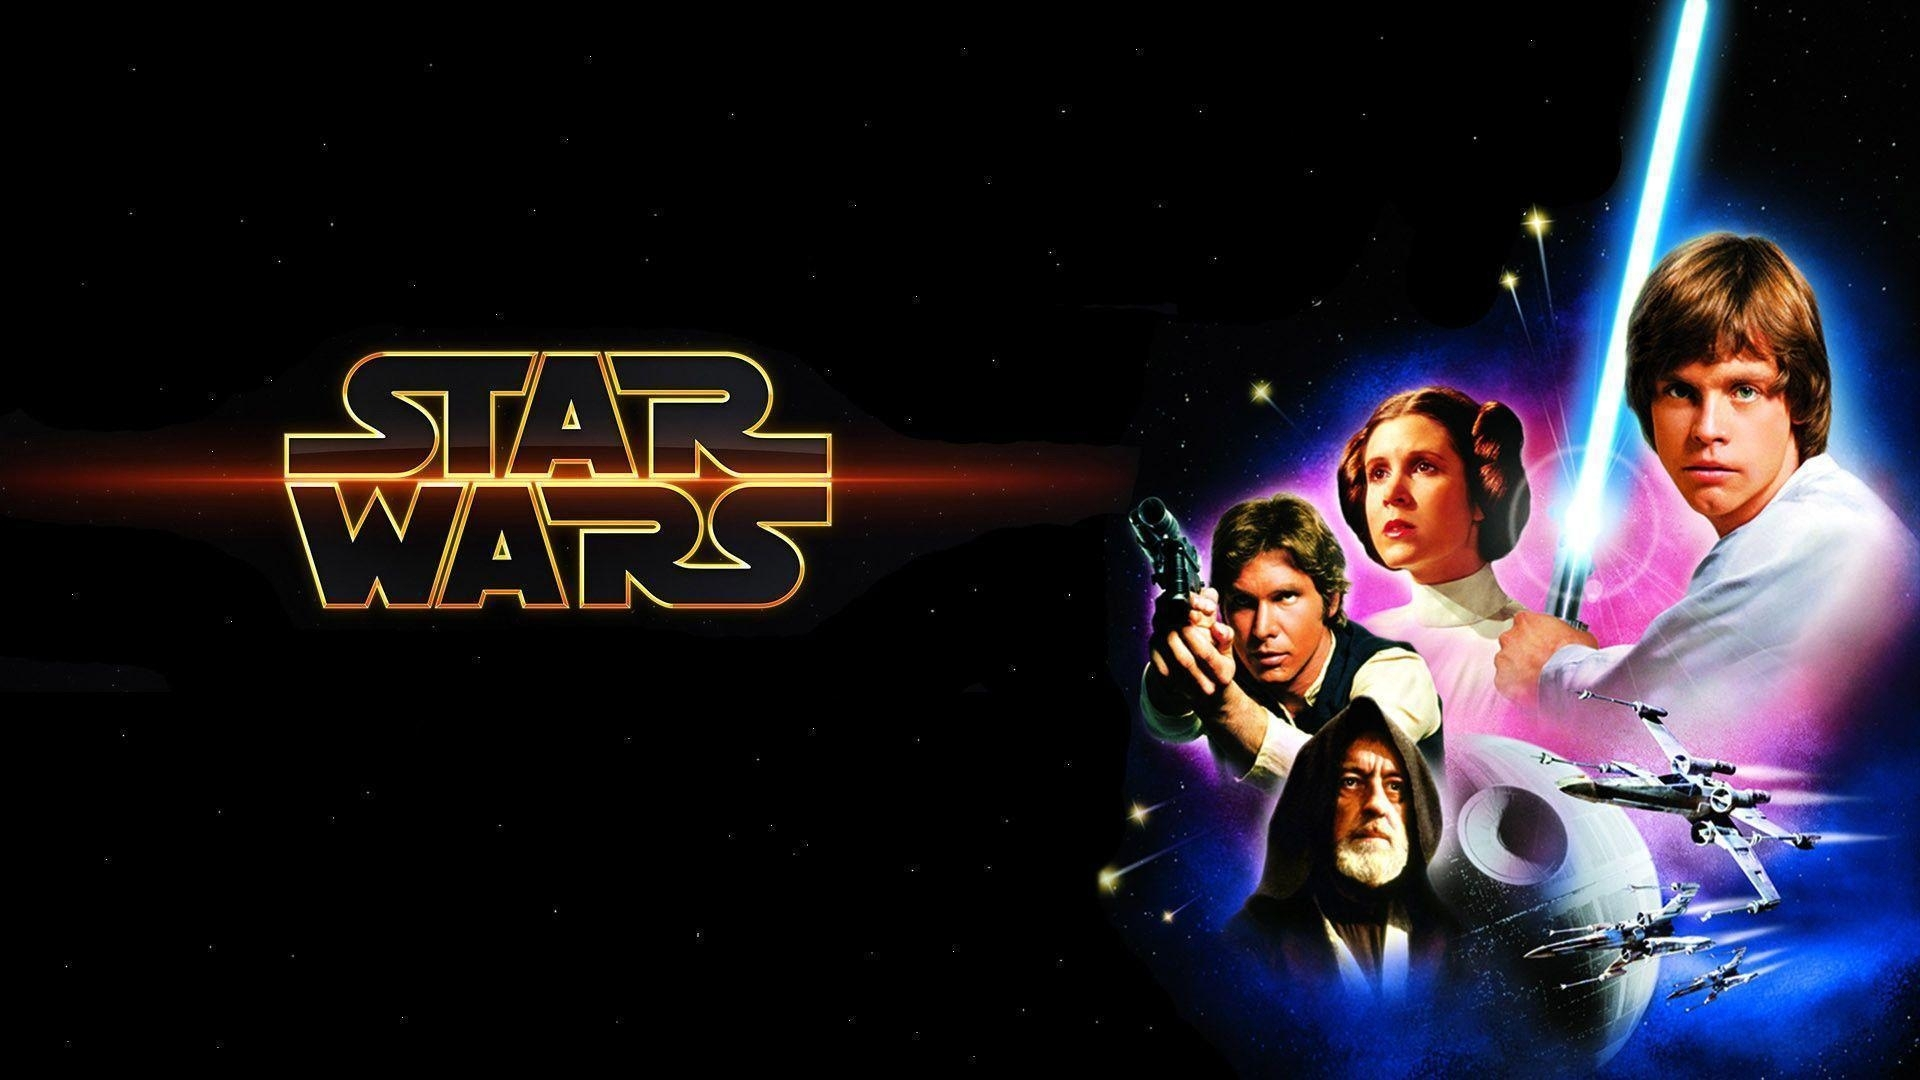 star wars episode 4 wallpapers - wallpaper cave